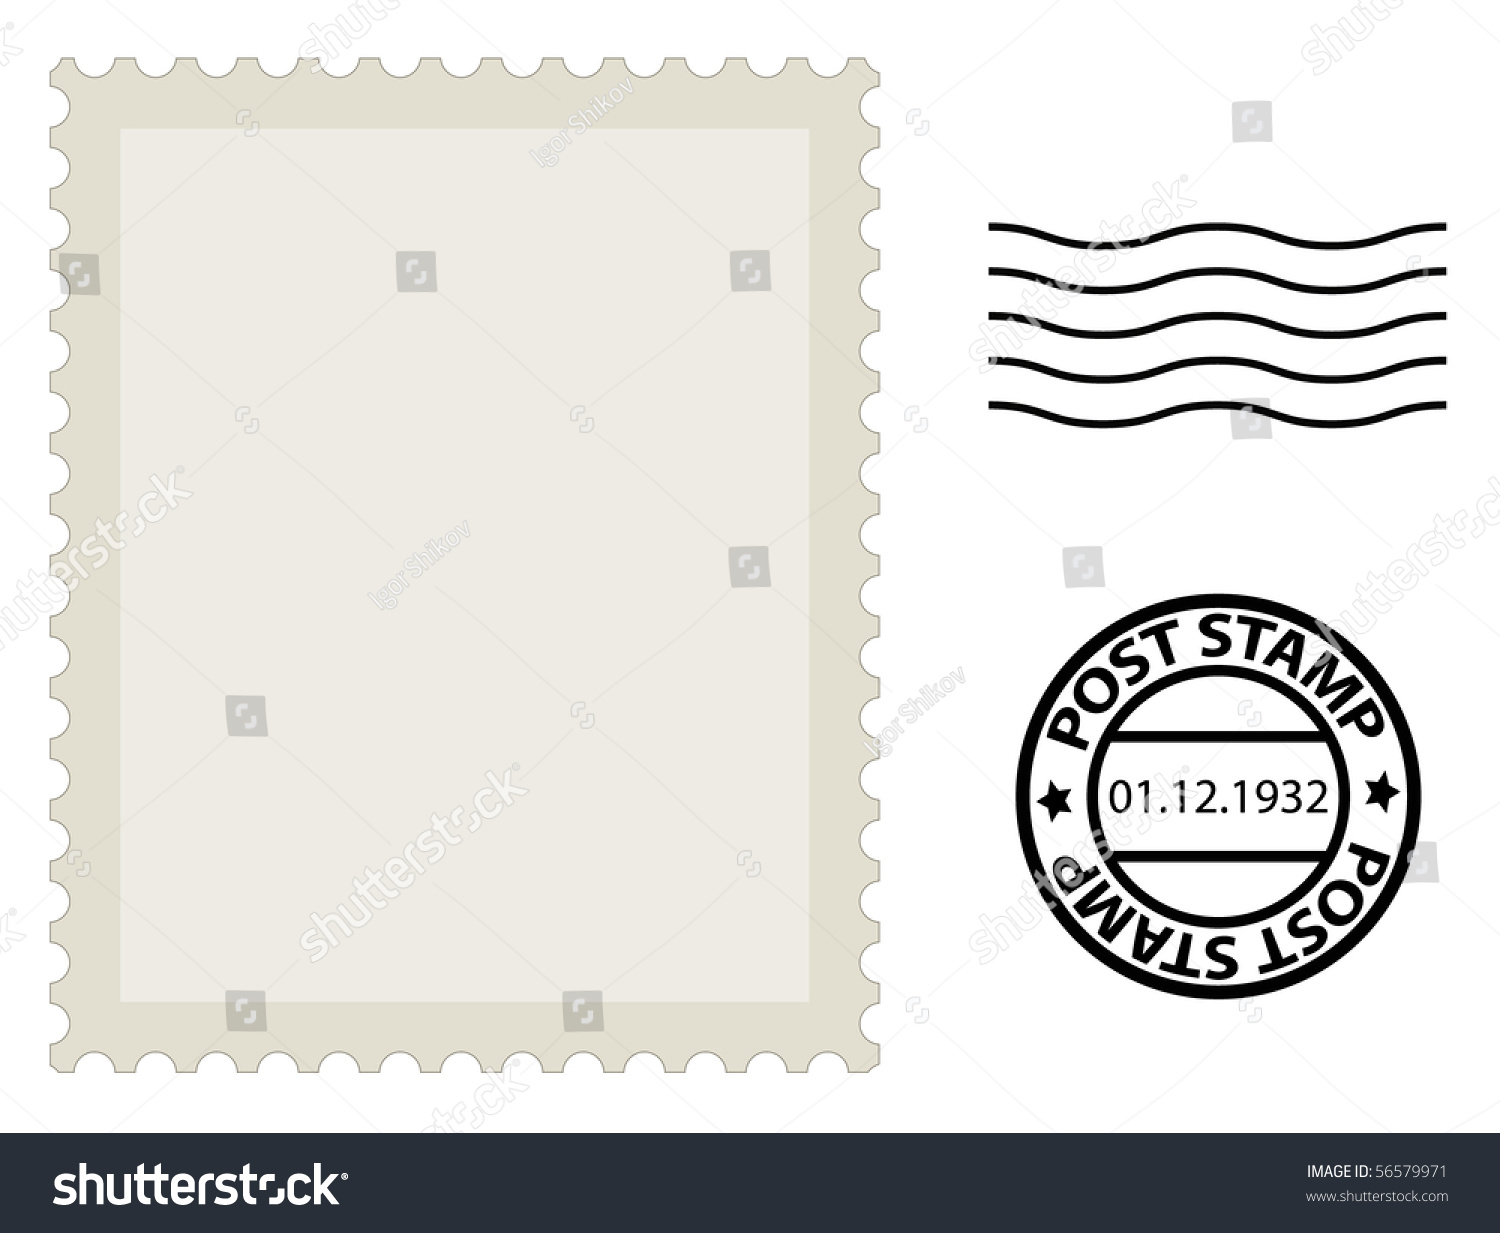 post stamp template stock vector 56579971 shutterstock. Black Bedroom Furniture Sets. Home Design Ideas